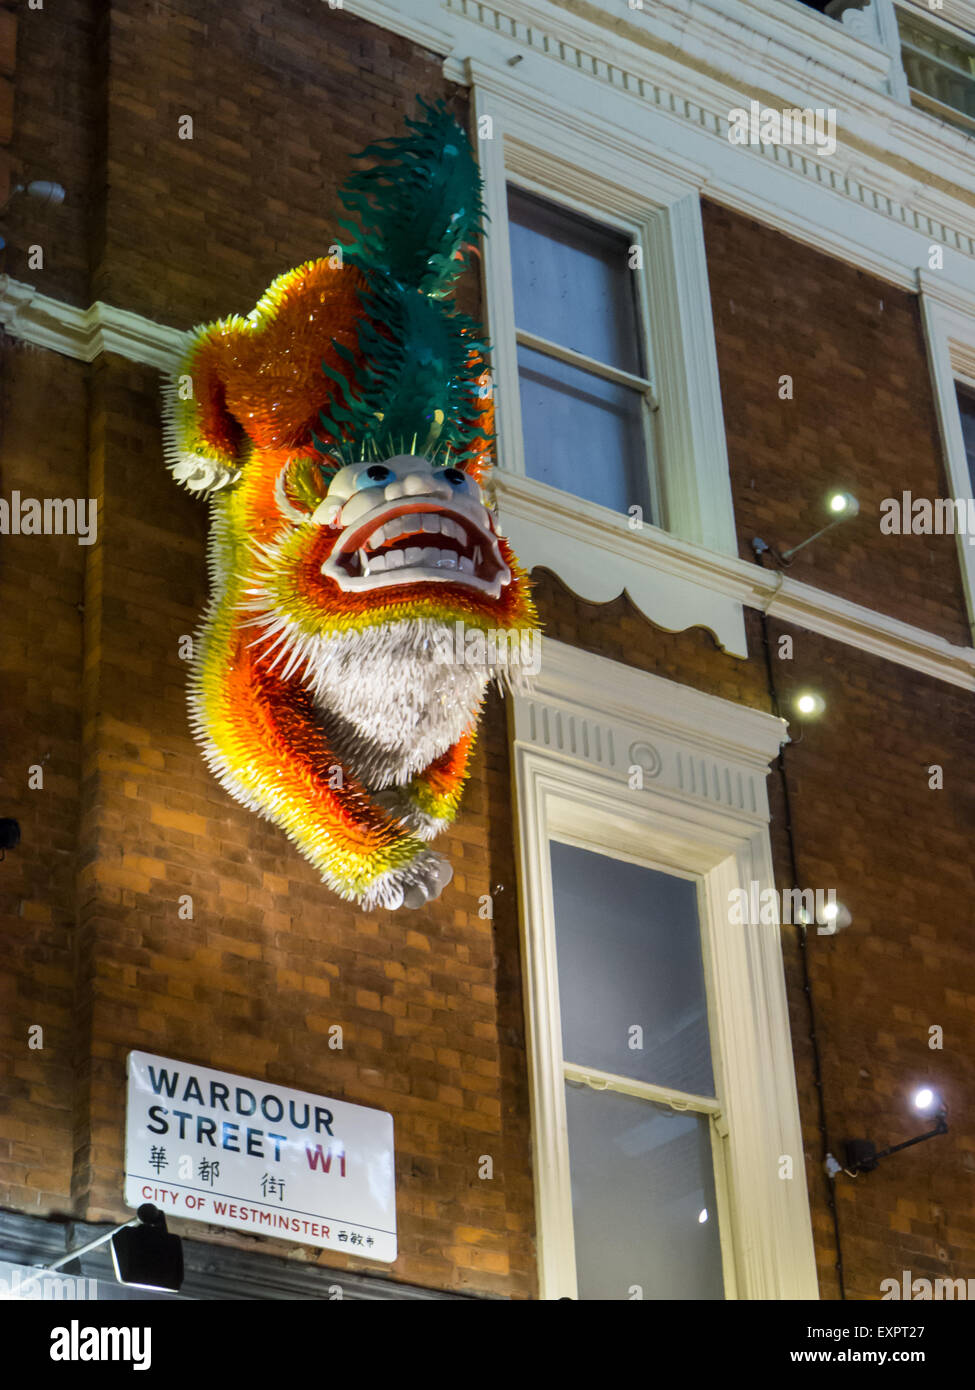 China Town, London, England. Chinese New Year dragon on the wall in Wardour street, Soho. - Stock Image